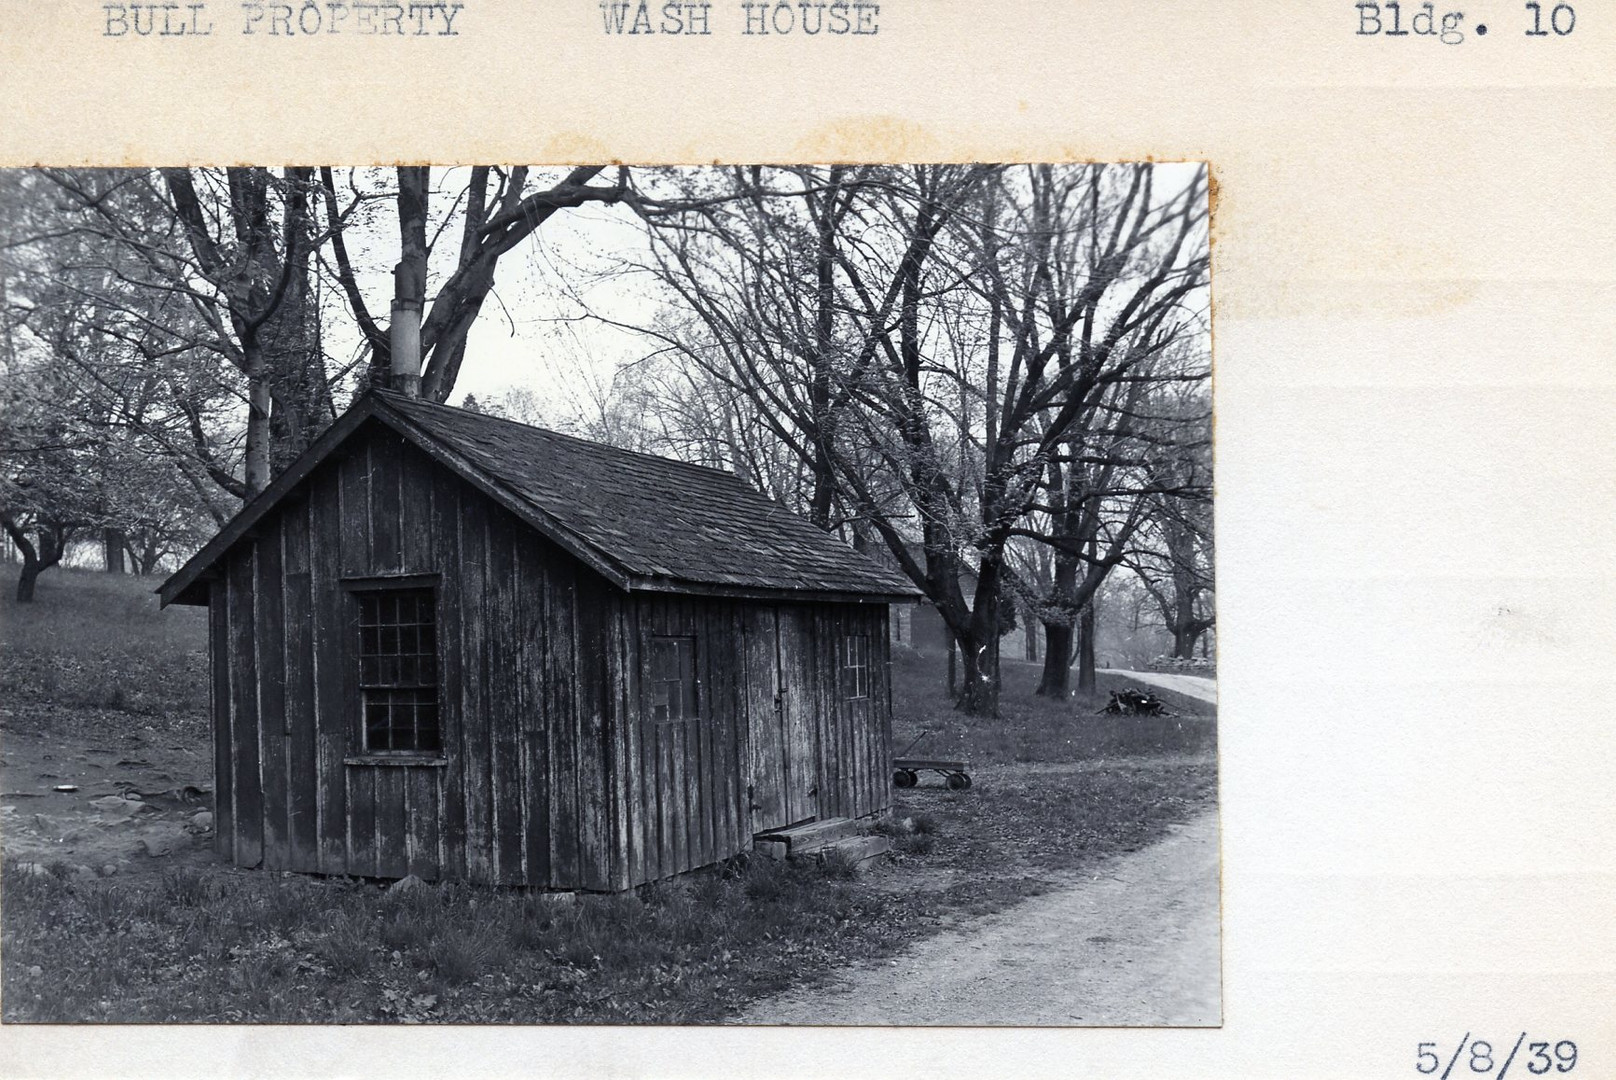 Bull Property, Bungalow (form North), Building #2, 5/8/39